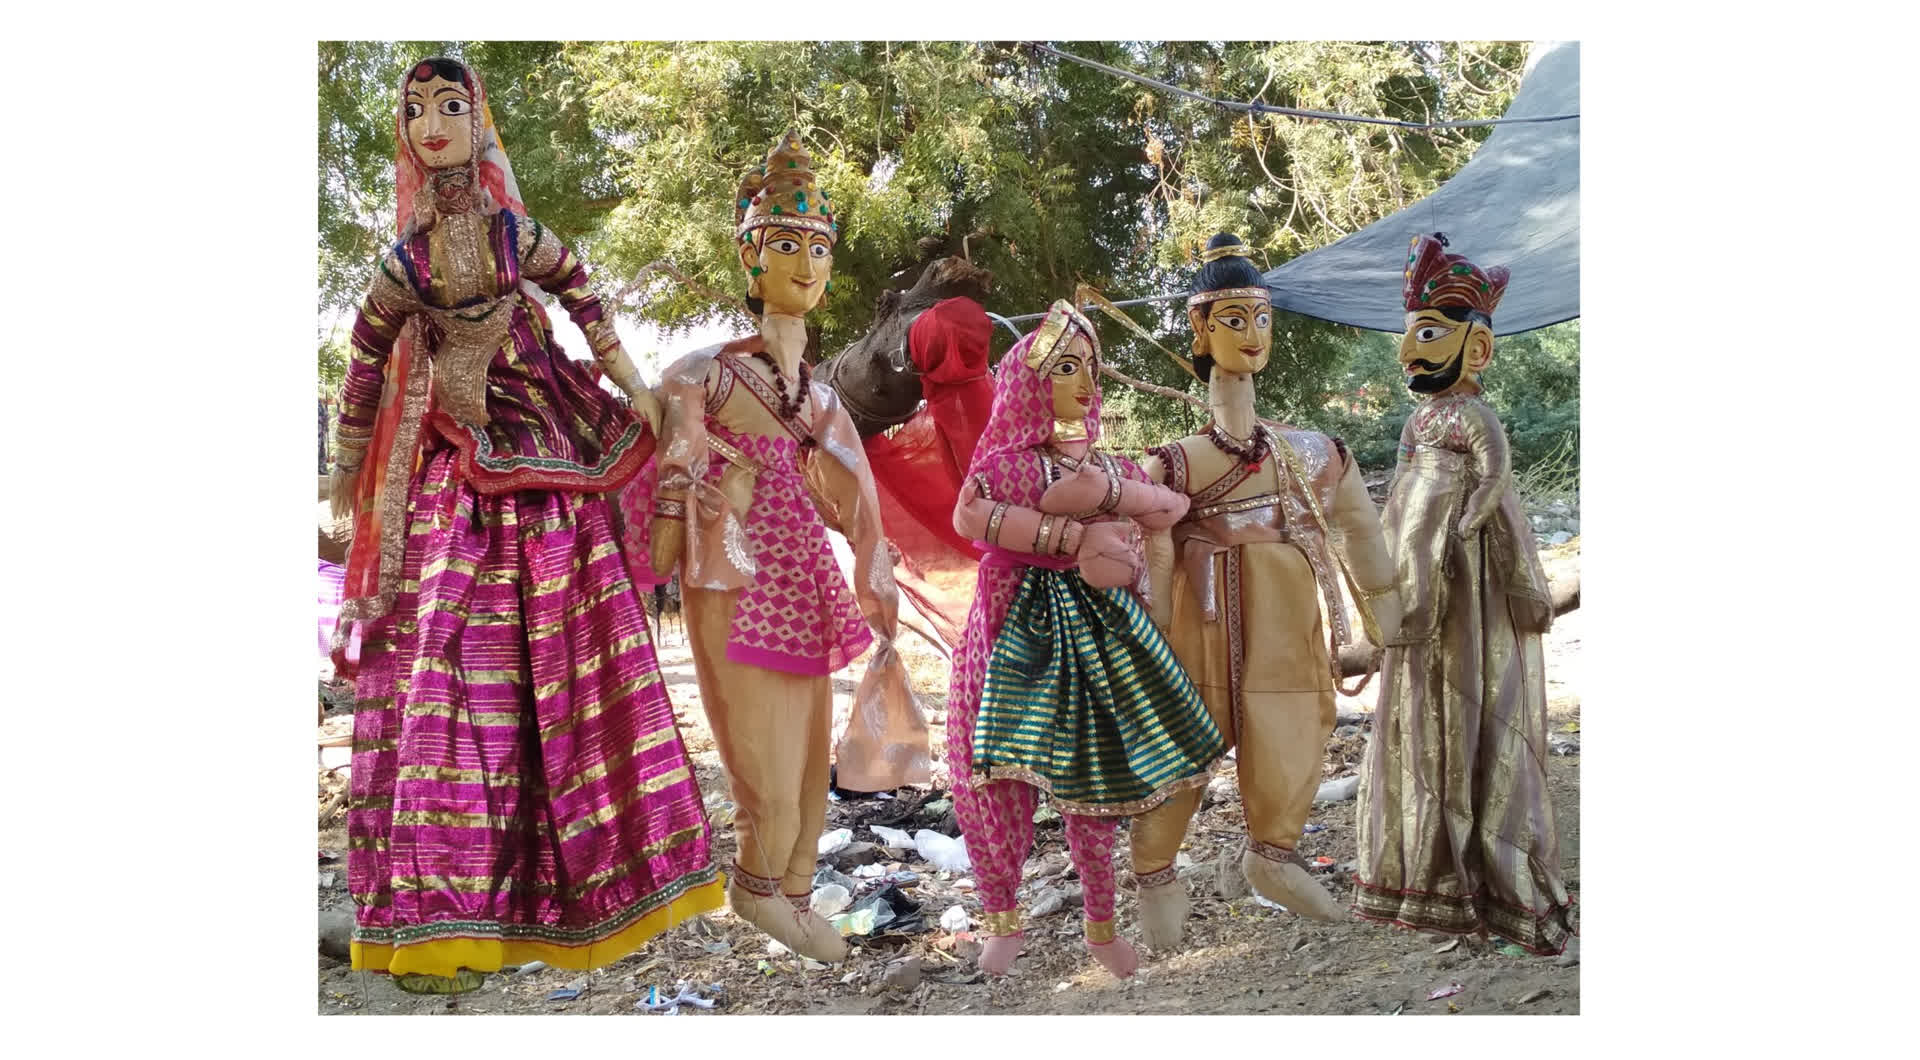 The Unique Craft of Rajasthan's Puppeteers